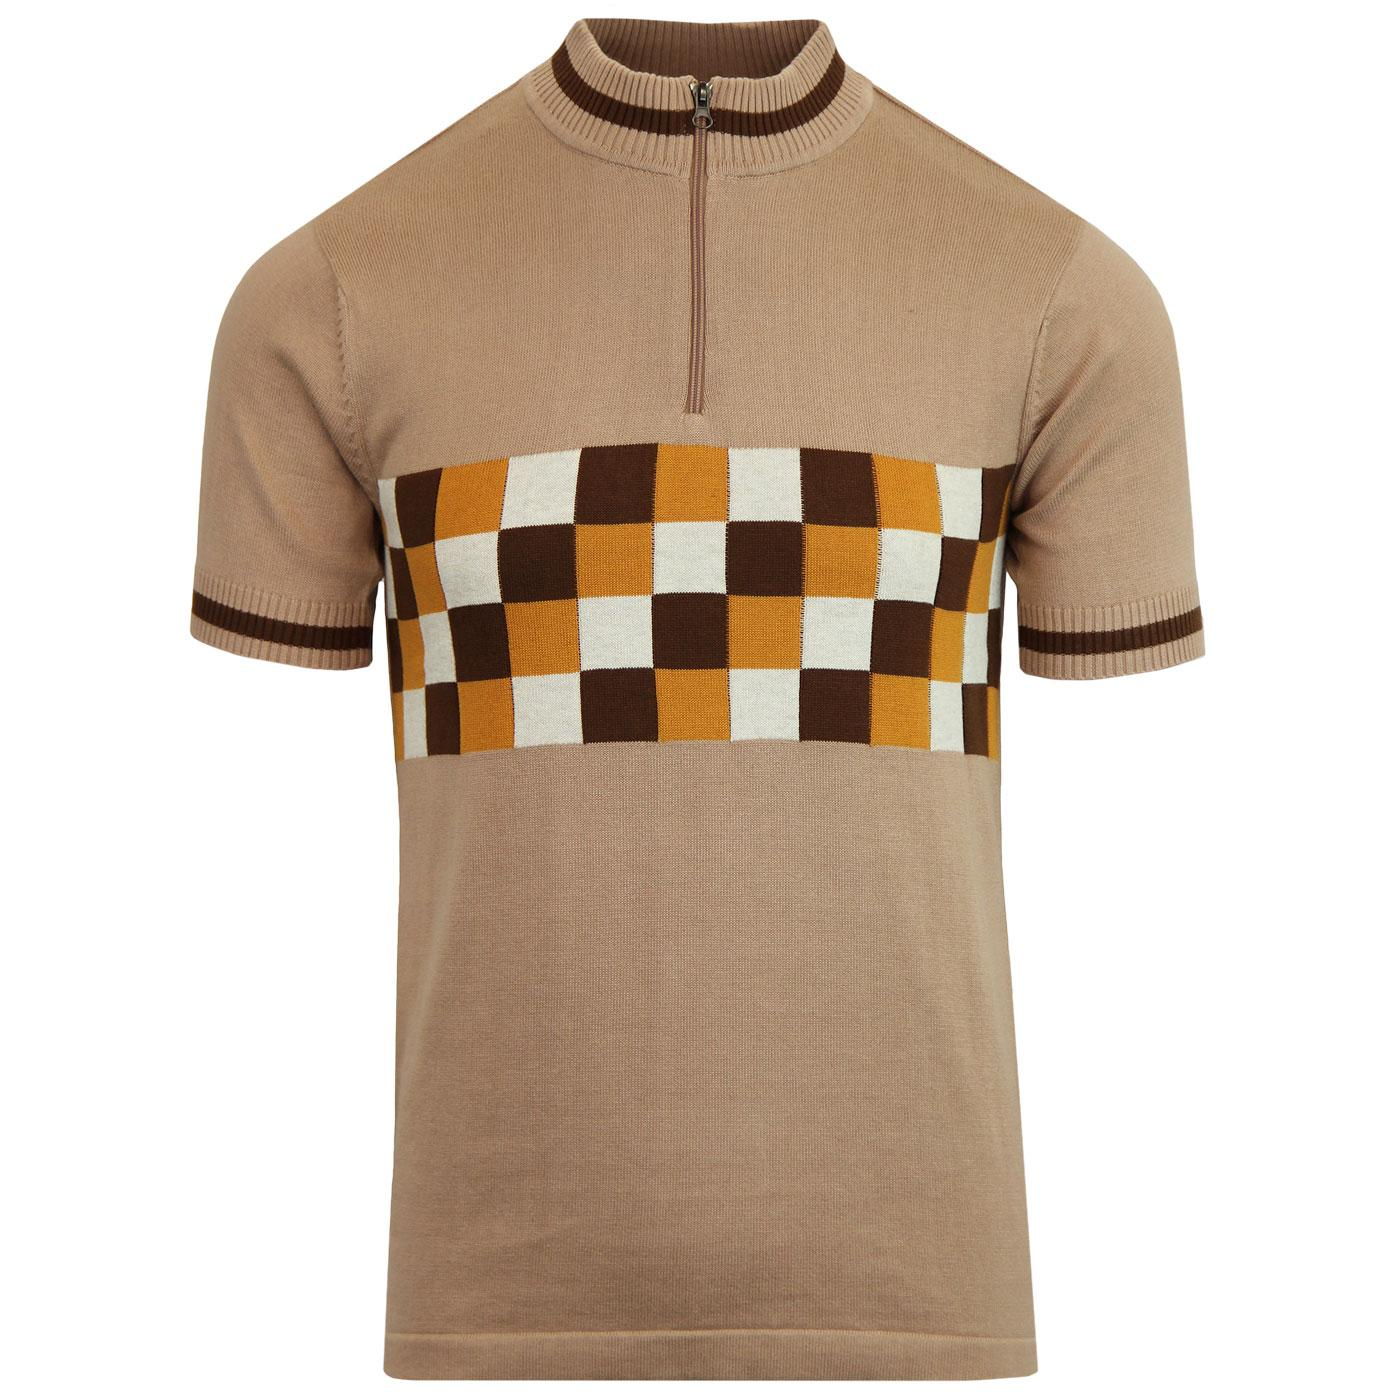 Coppi MADCAP ENGLAND Mod Checkerboard Cycling Top